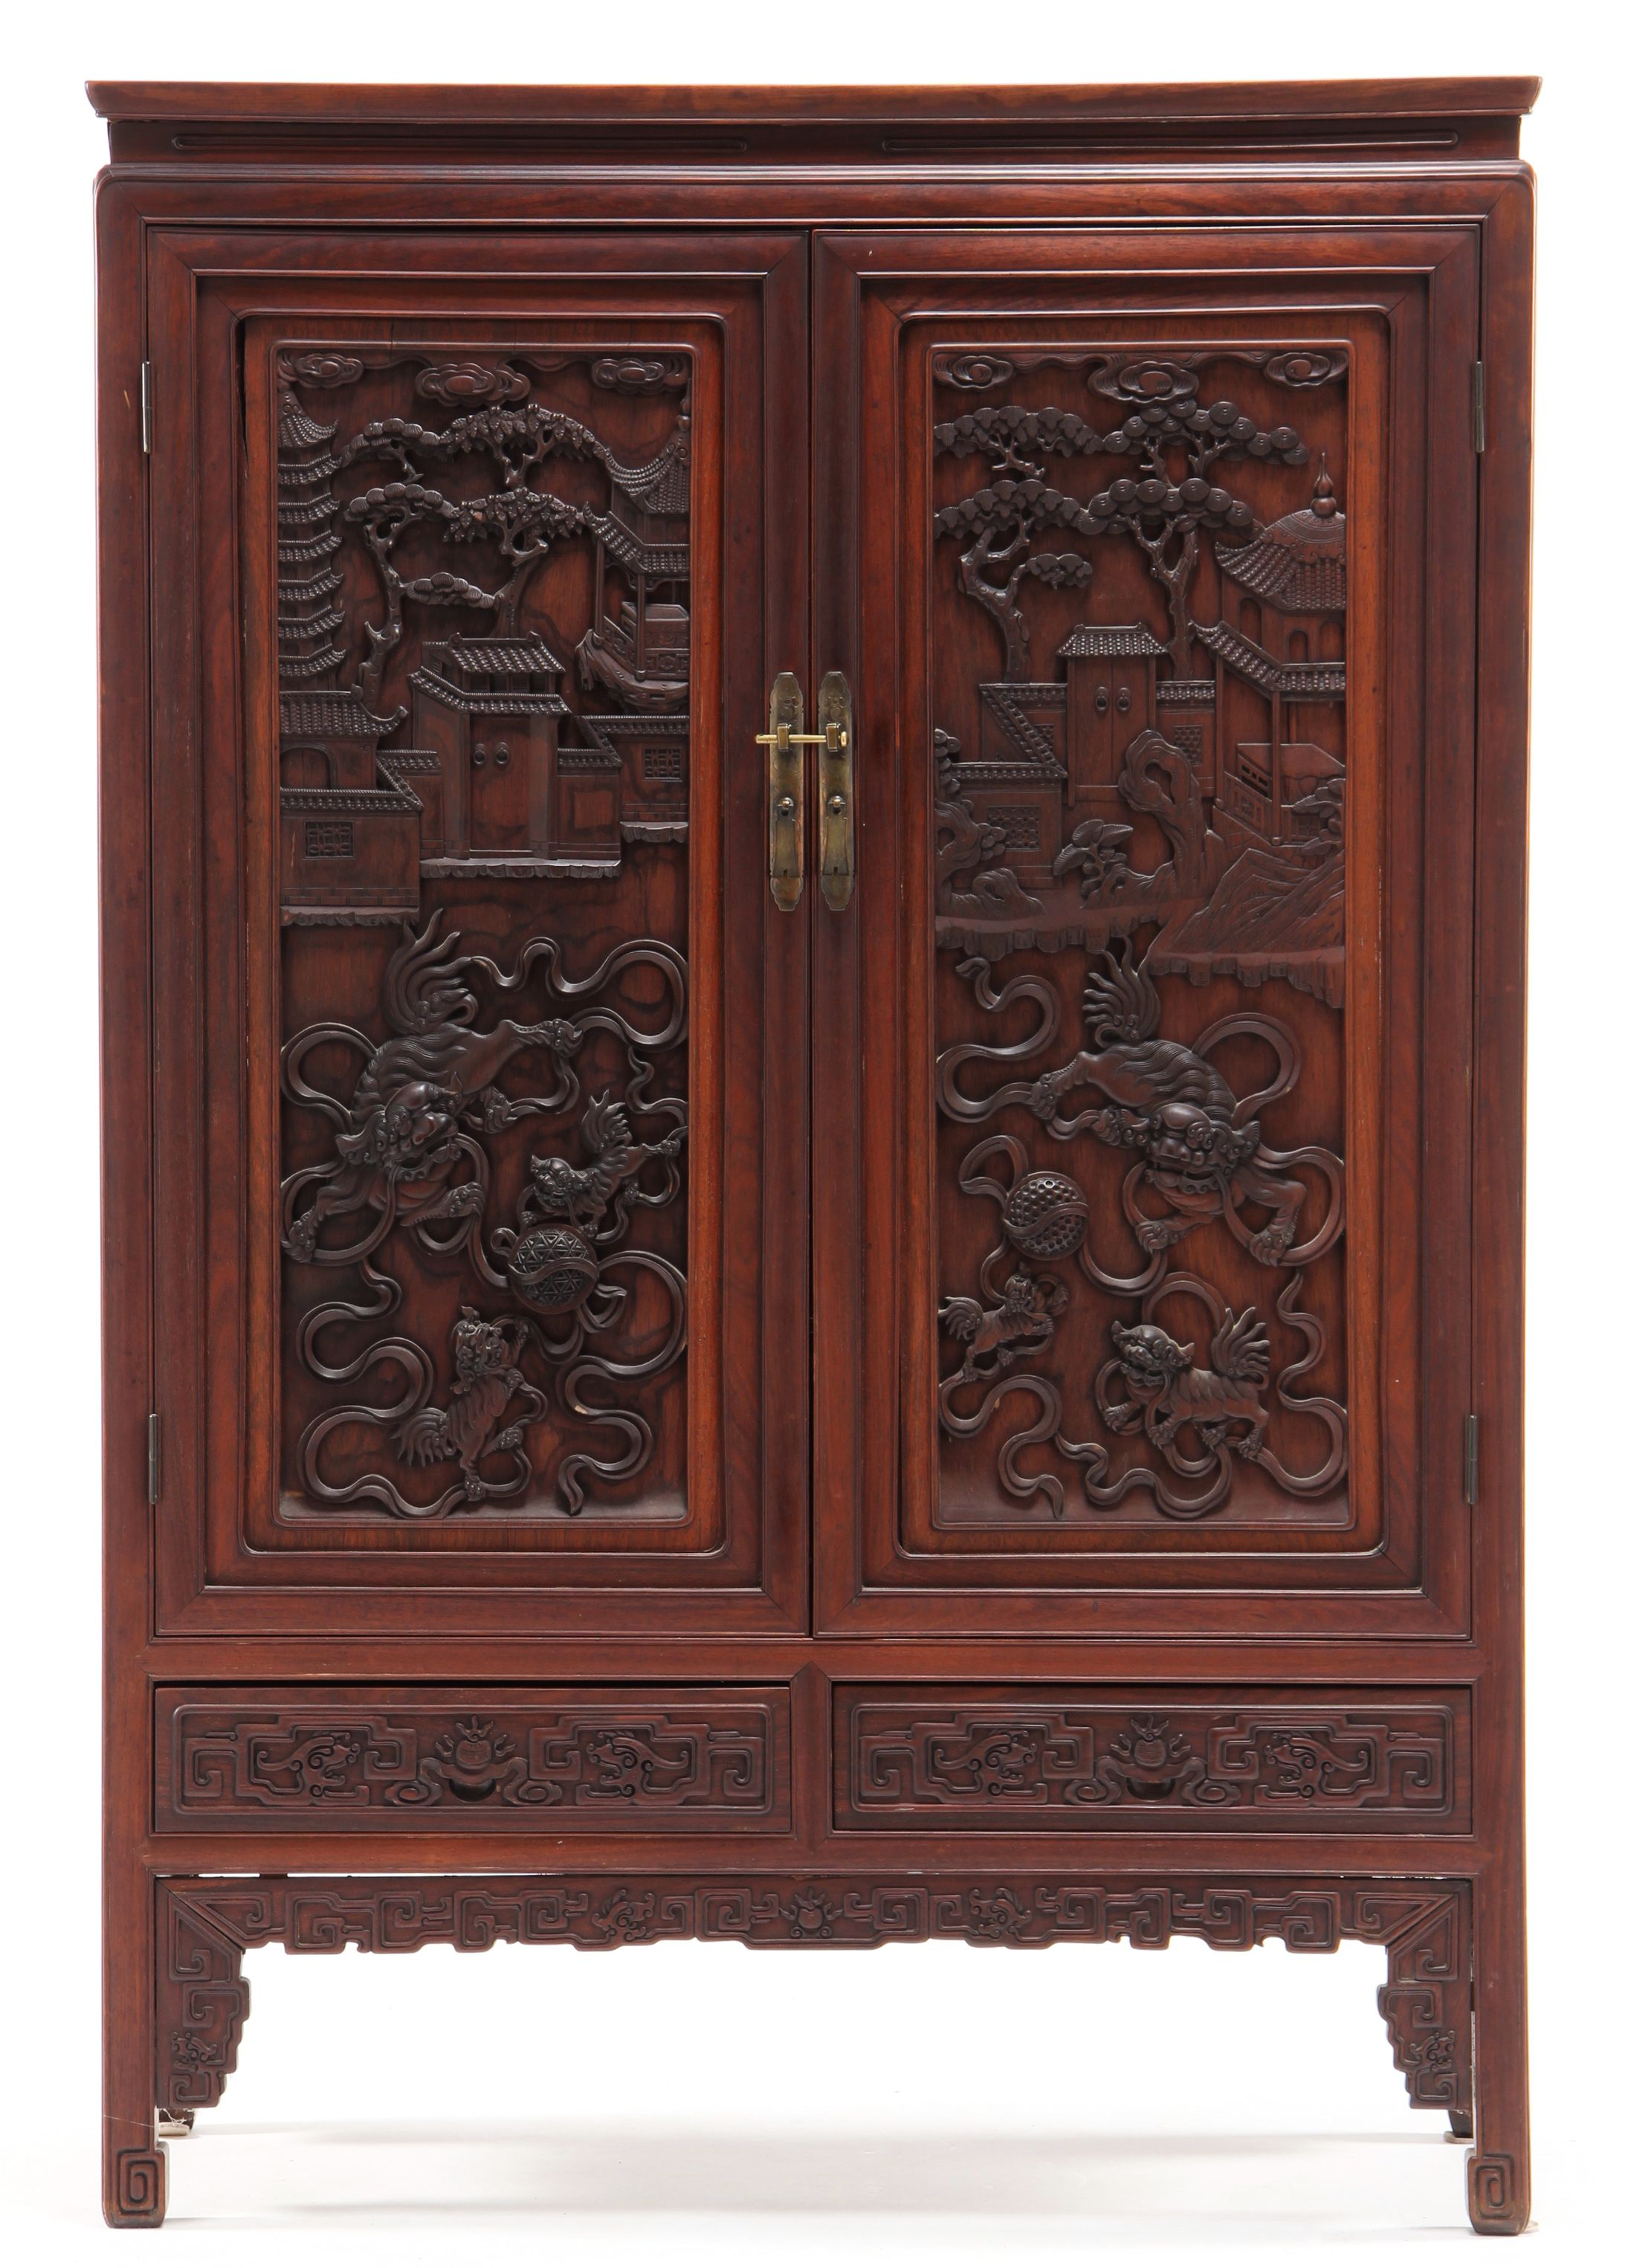 Chinese Carved Hardwood Cabinet Sold 9 000 Antique Chinese